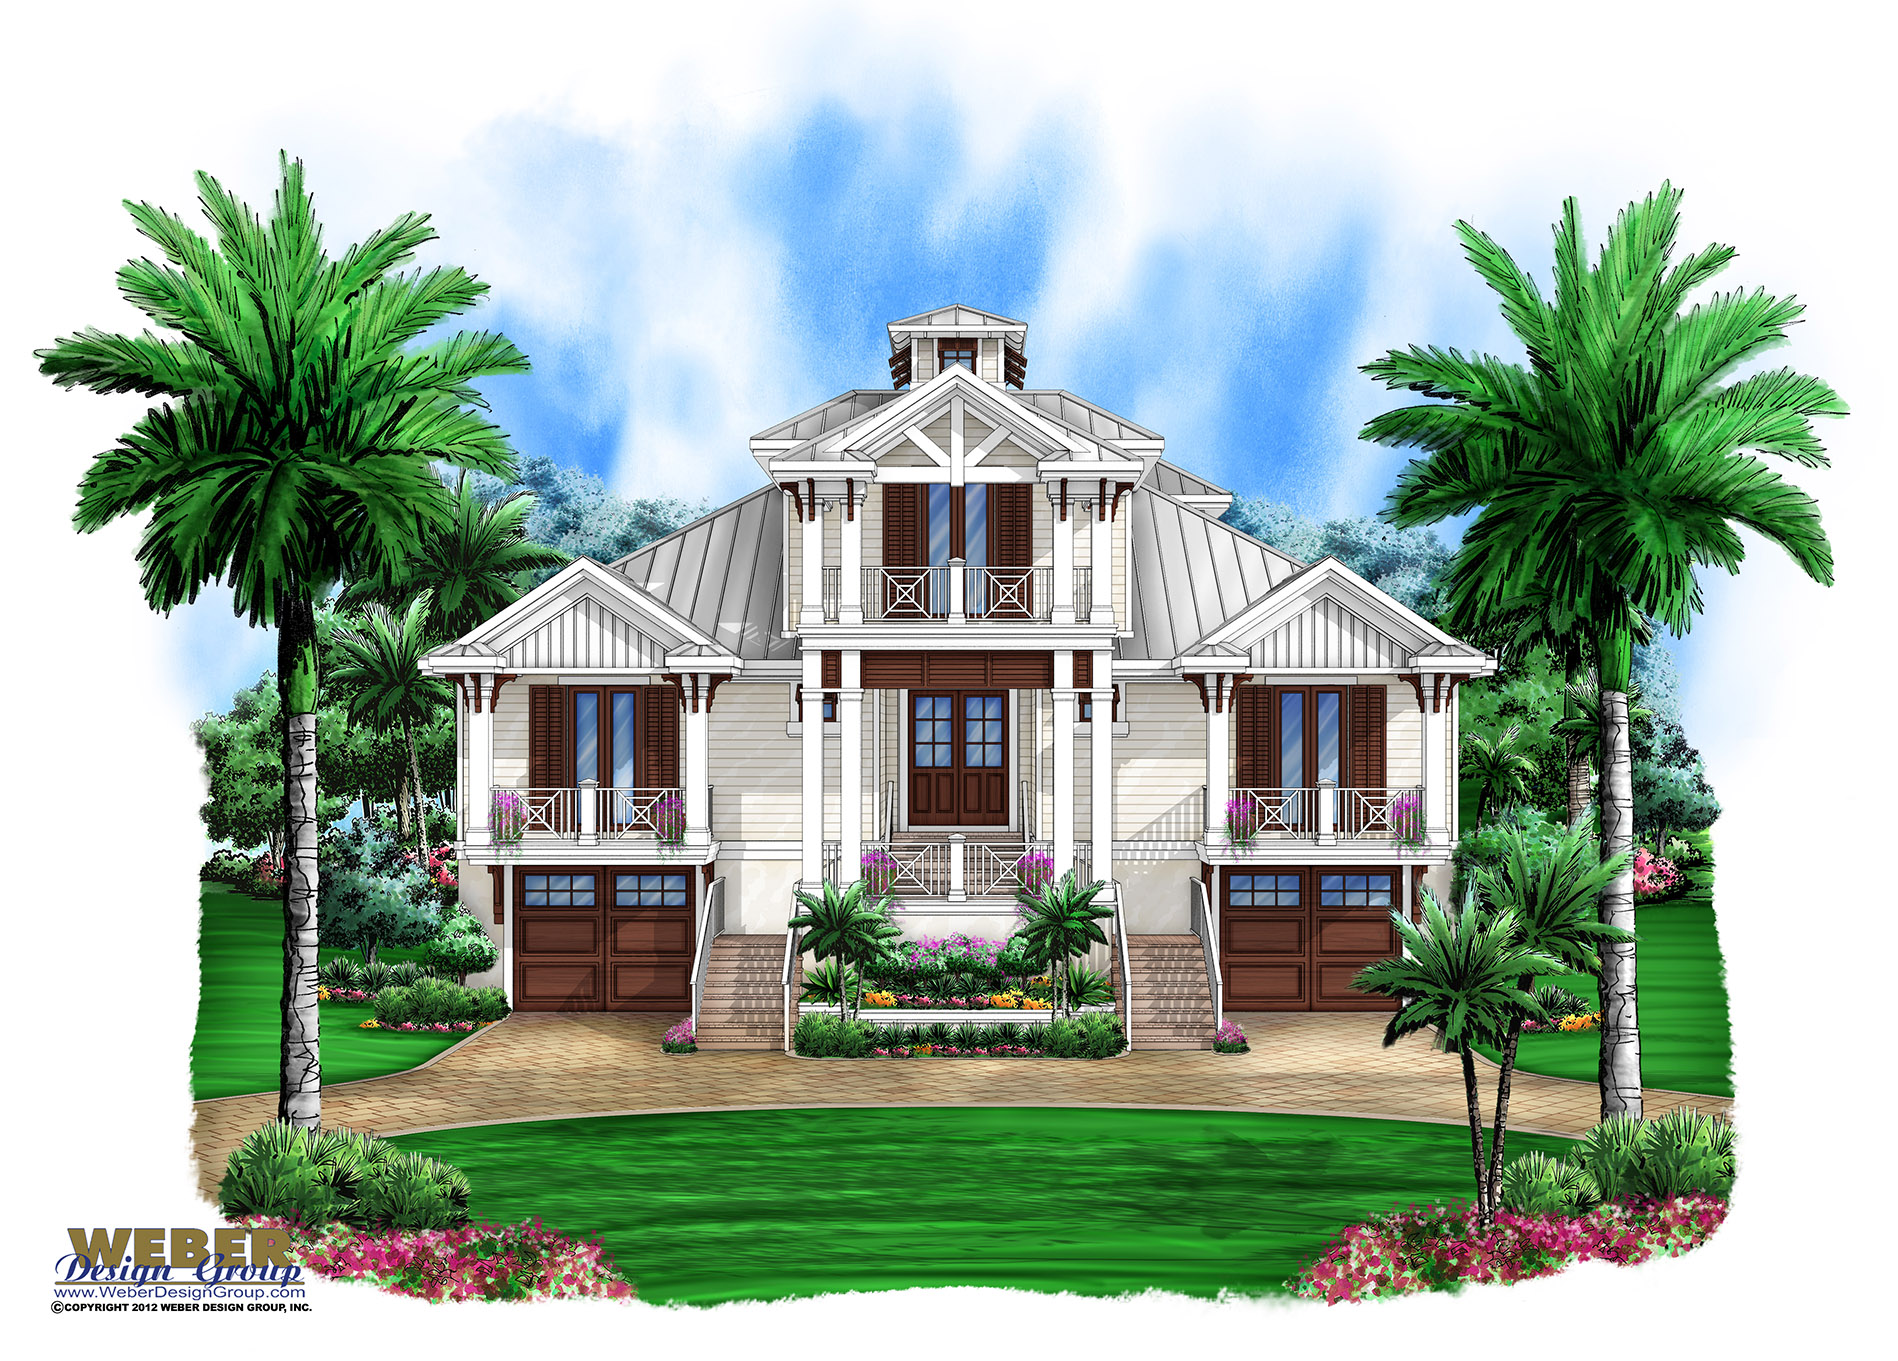 Marsh harbour olde florida house plan weber design group for Beach house elevations